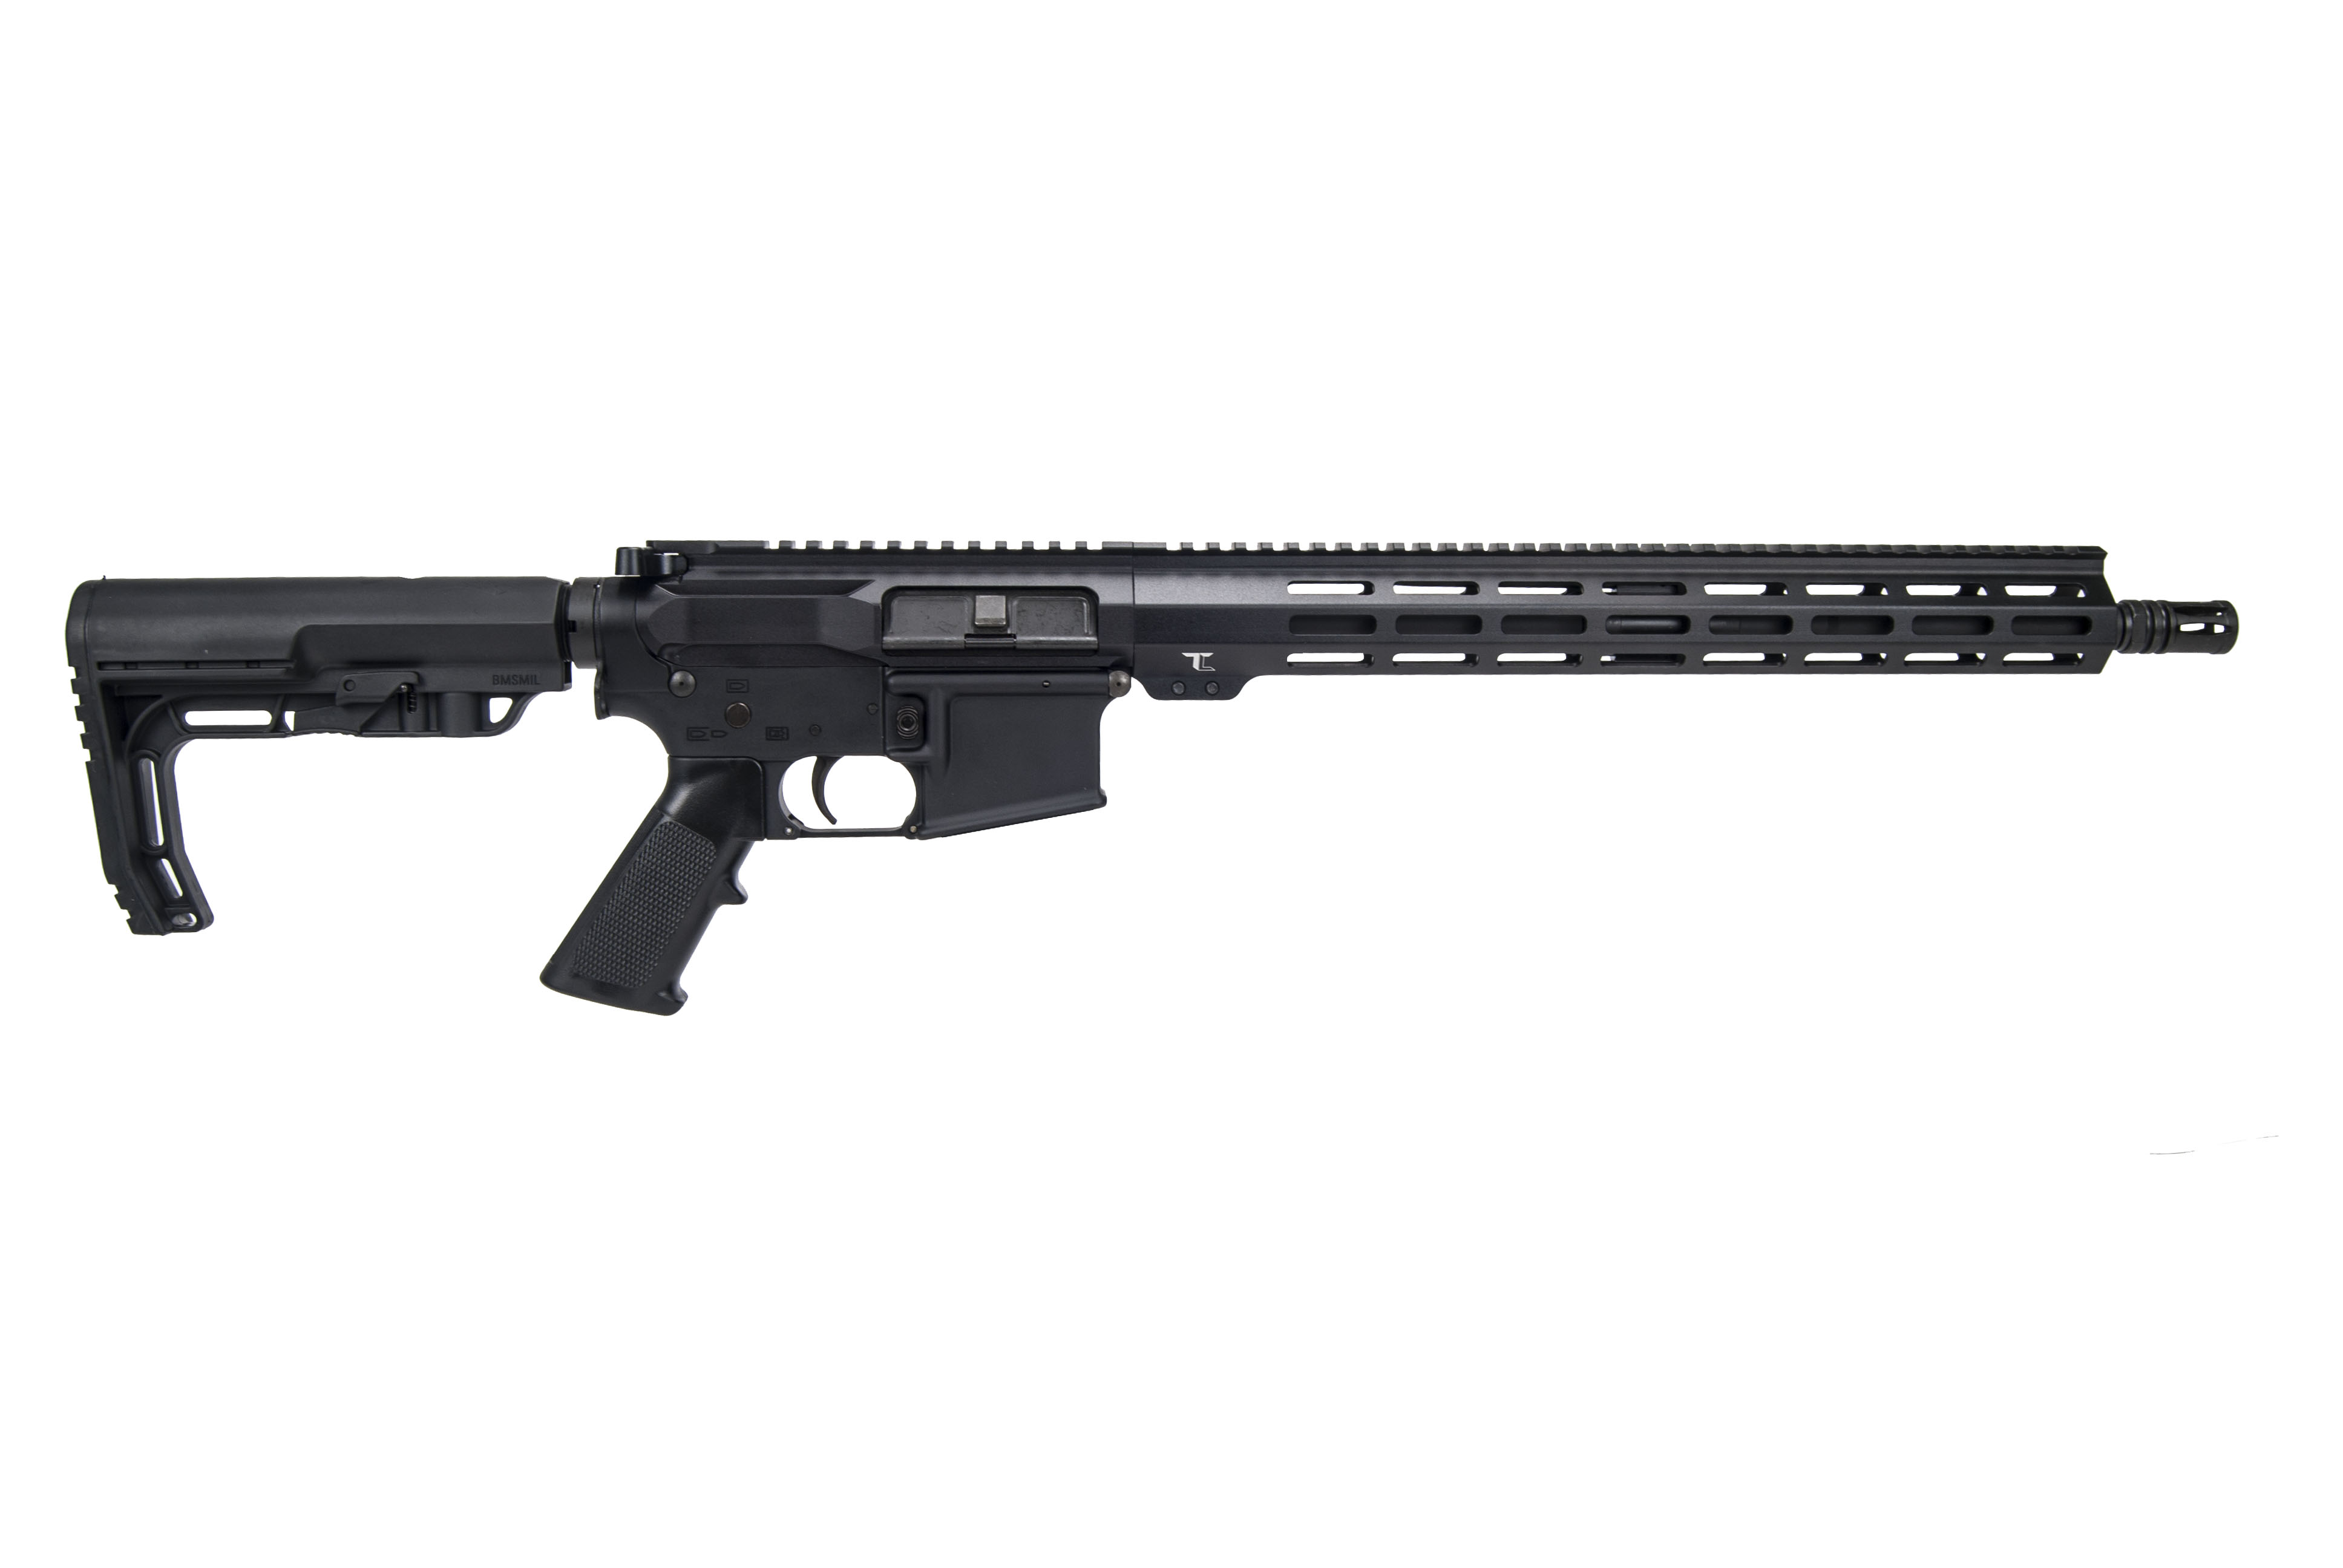 SF1 Stealth Fighter 5.56 Rifle